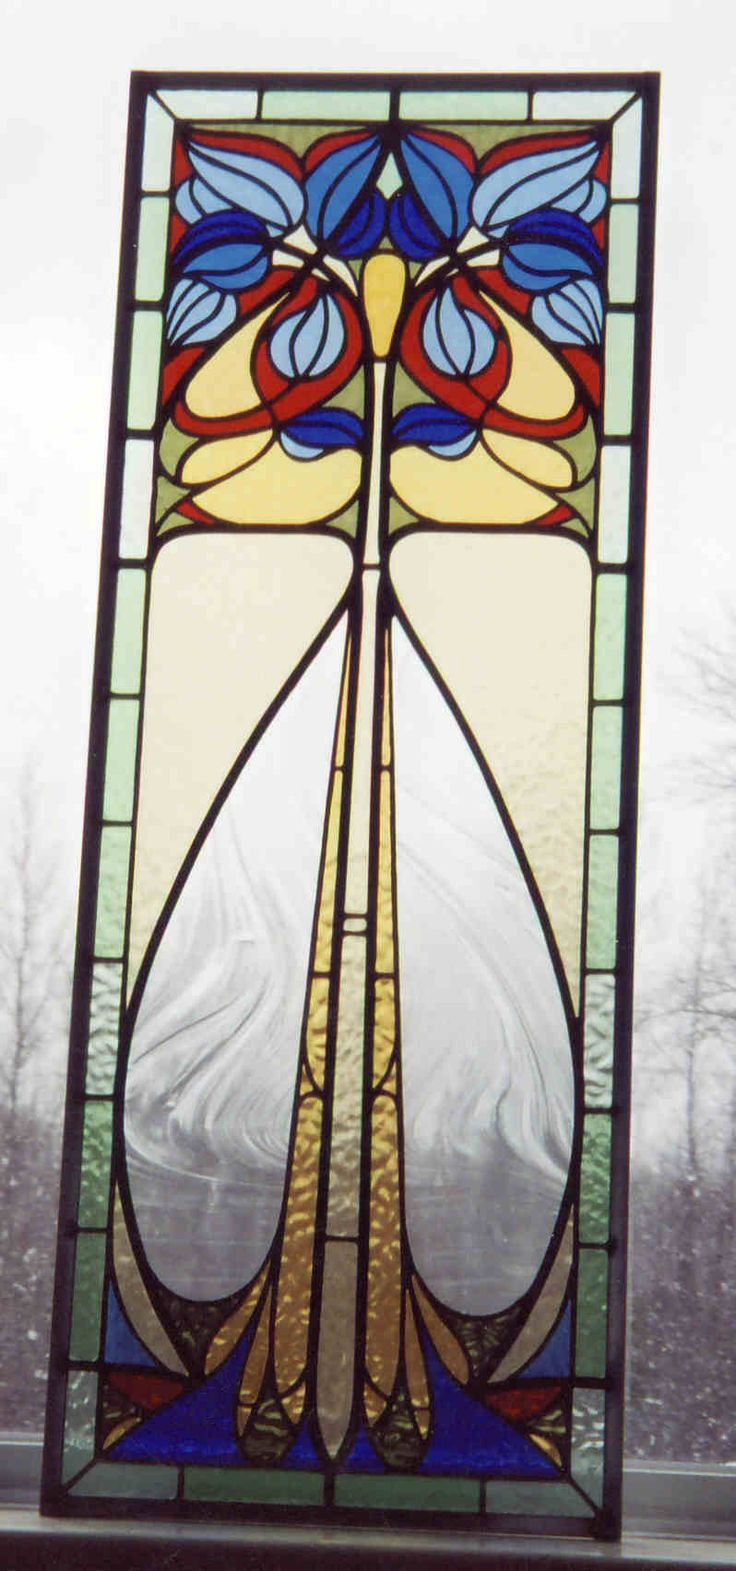 Franklin art glass studios inc clear cotswold glass 3 320 - Art Nouveau Stained Glass Panel By Gary Wilkinson